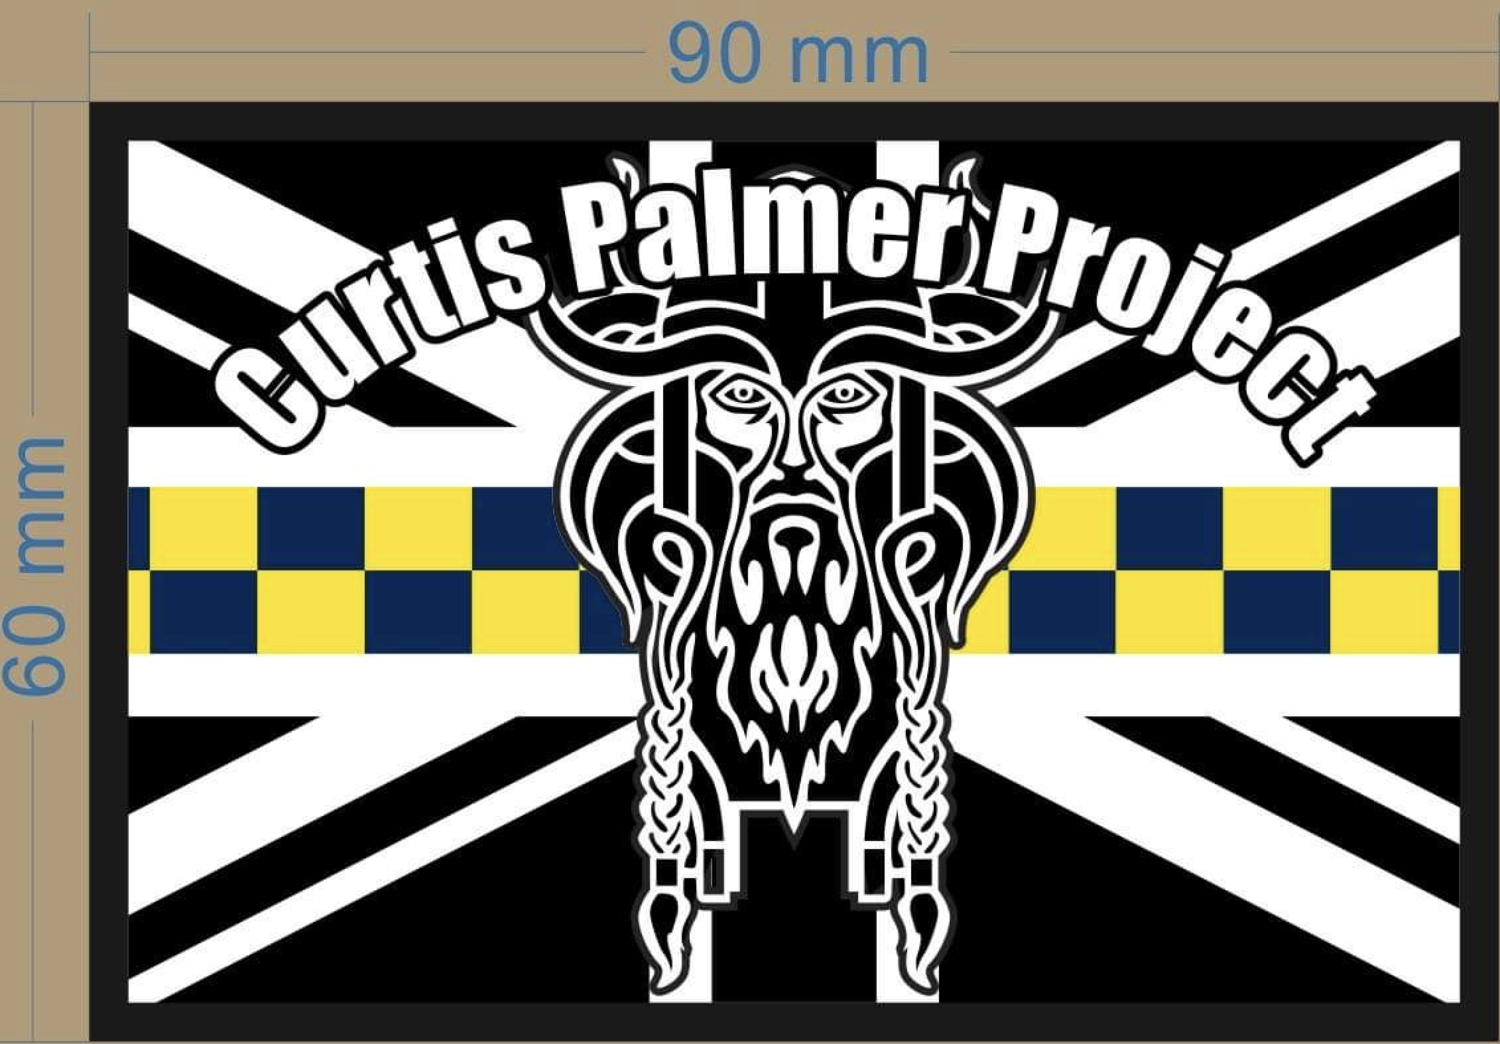 Curtis Palmer Support patch